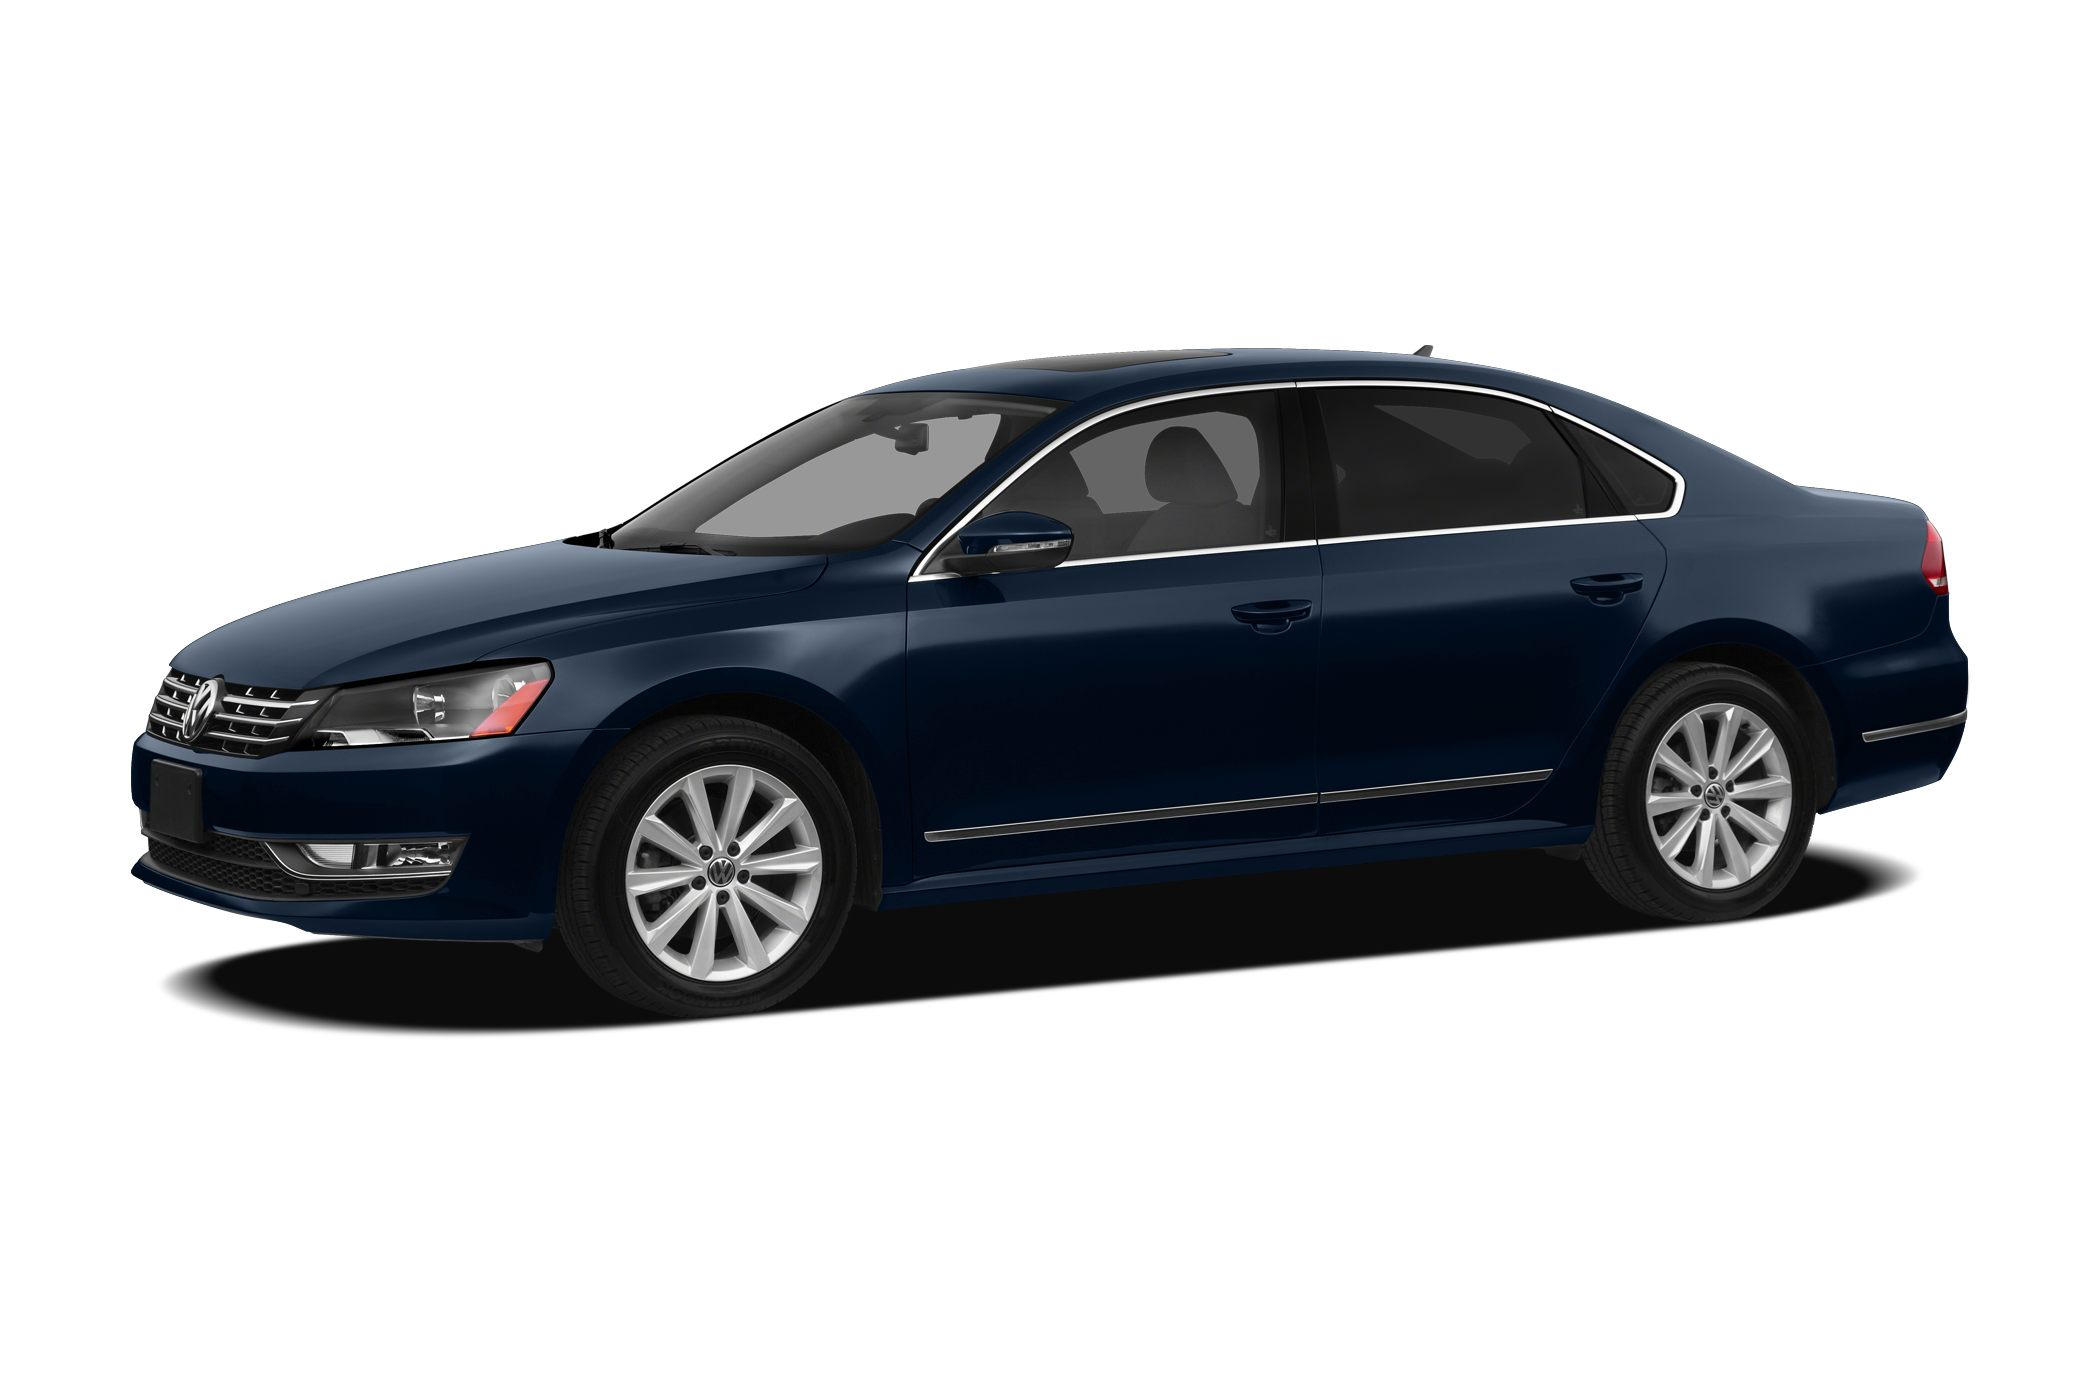 2012 Volkswagen Passat 2.5 SE Sedan for sale in Spartanburg for $14,994 with 48,060 miles.